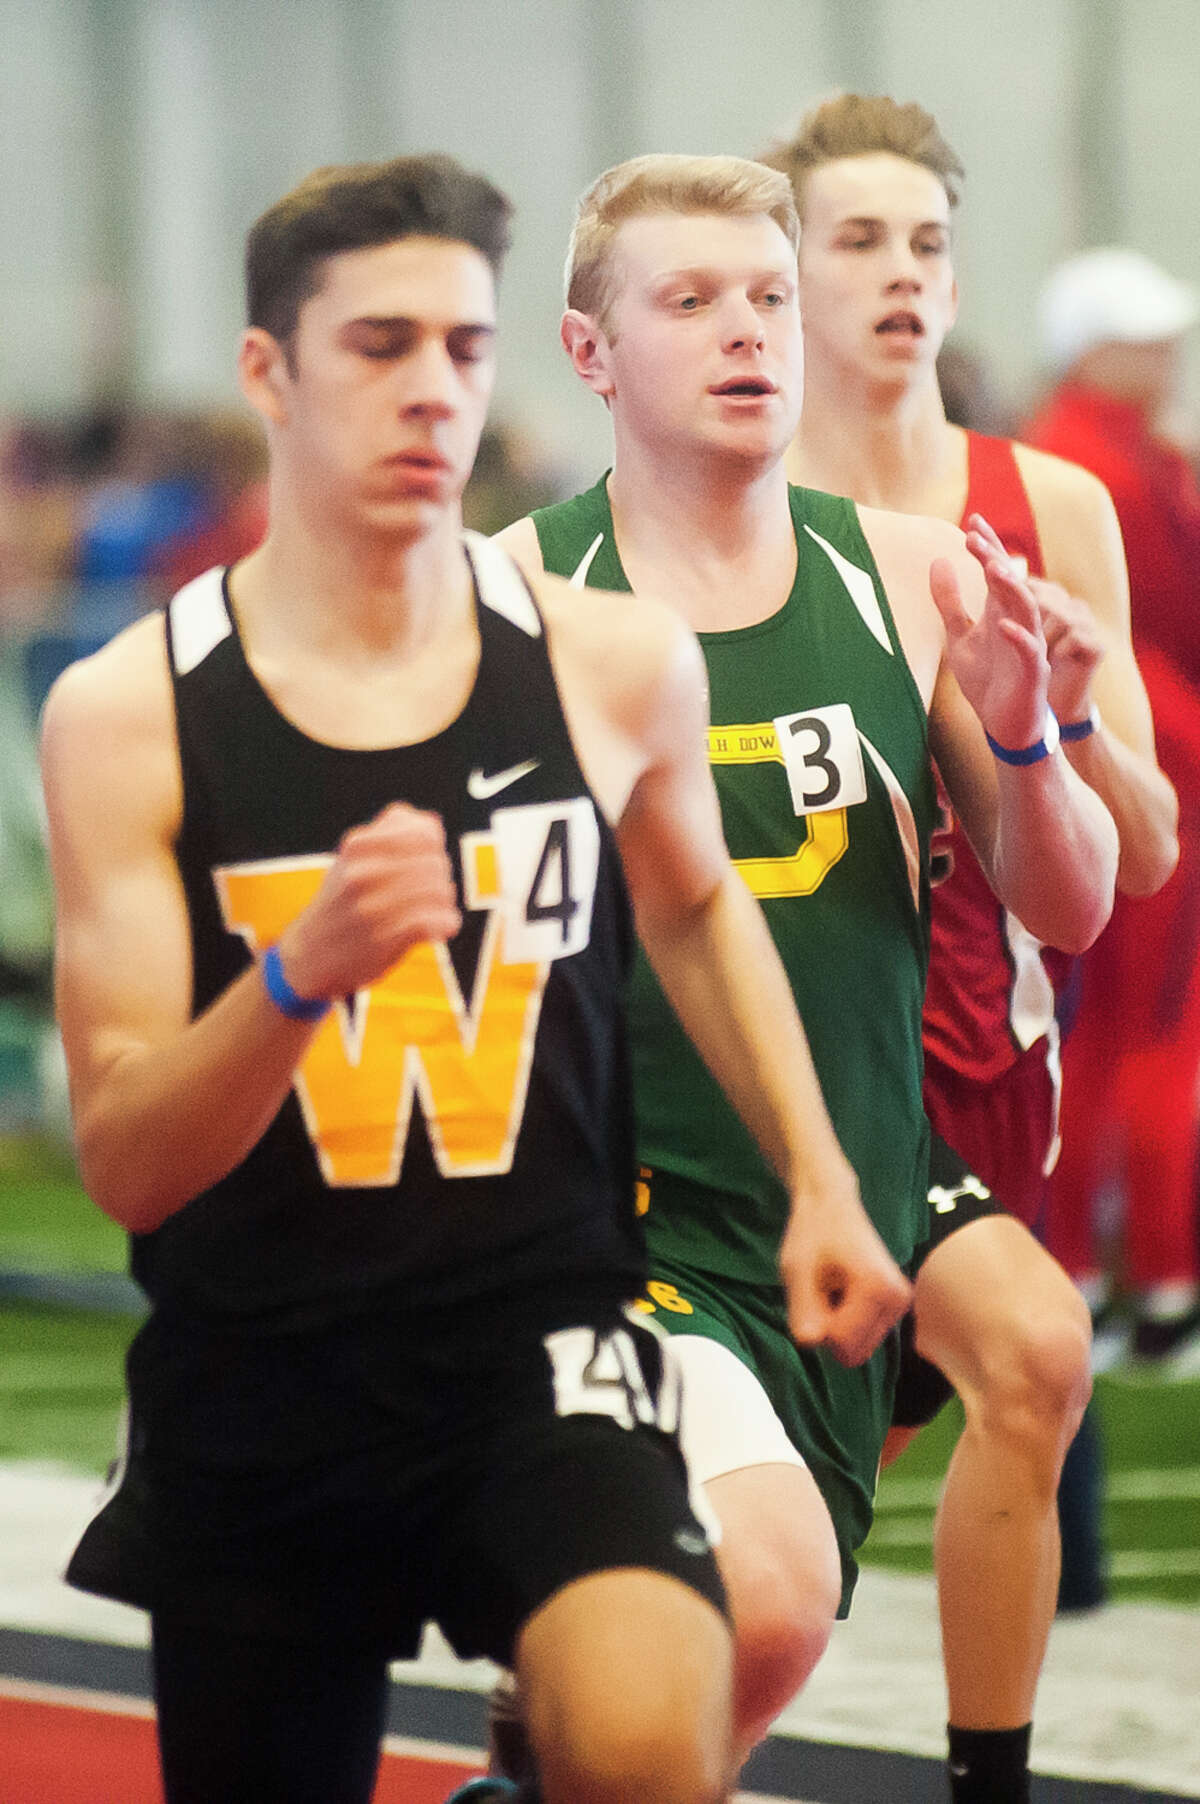 Dow junior Zach Coon, center, competes in the 400 meter dash during the MHSAA Division 1 High School Track and Field Invitational on Wednesday, March 21, 2018 at Saginaw Valley State University. (Katy Kildee/kkildee@mdn.net)